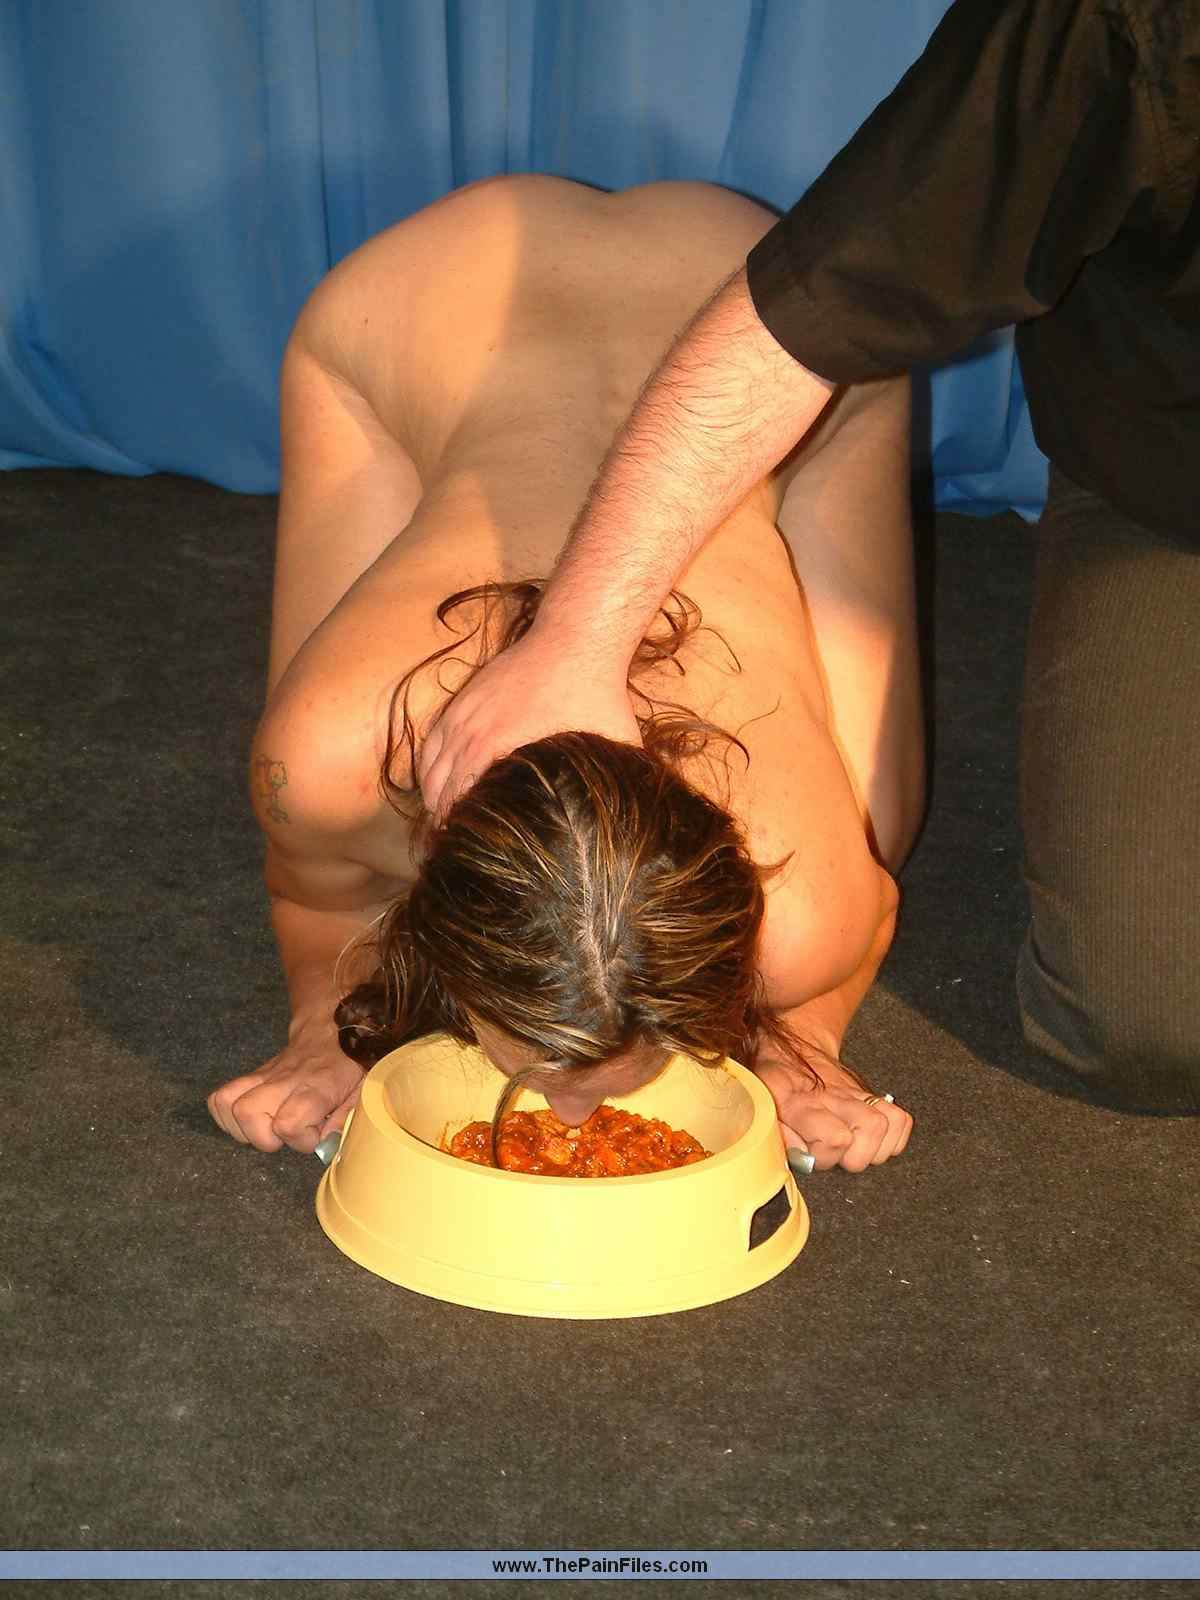 Erotic female torture videos pron photo